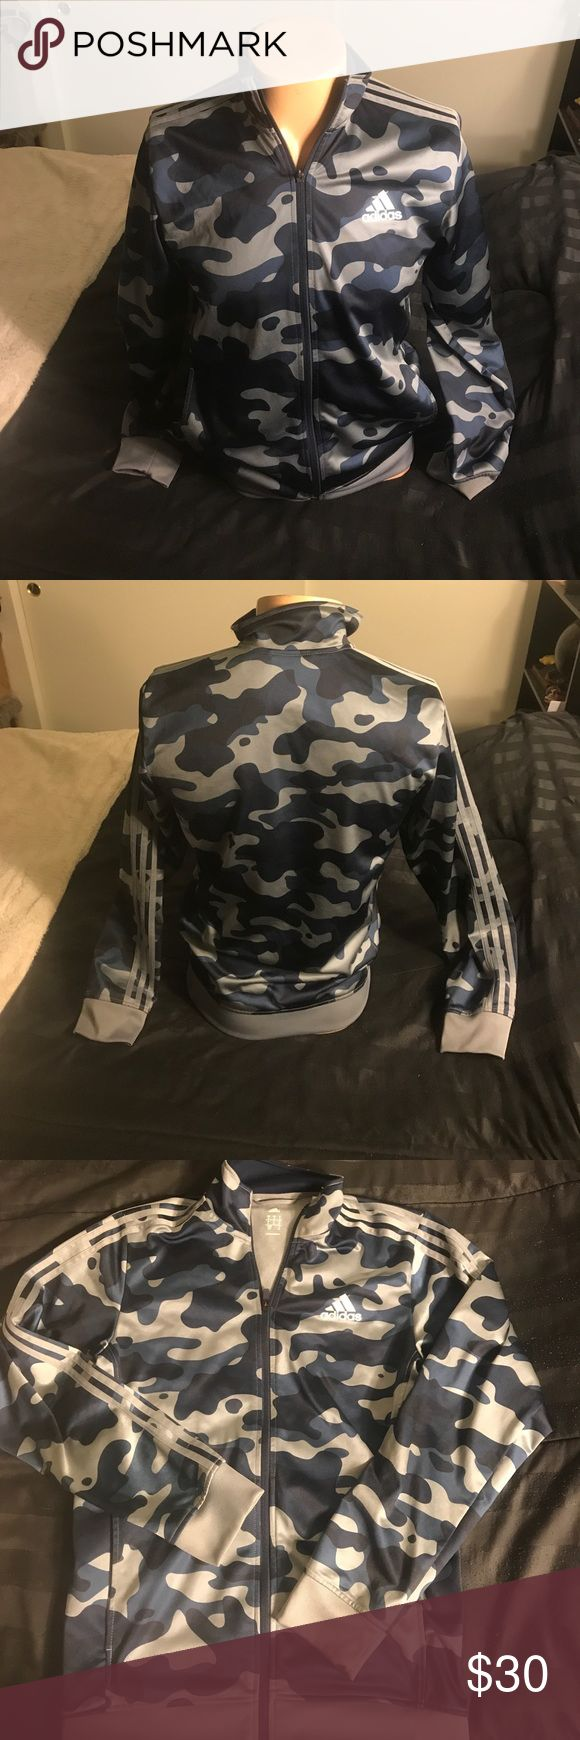 Adidas Camo Jacket Adidas camouflage jacket (will accept best offer) adidas Jackets & Coats Lightweight & Shirt Jackets